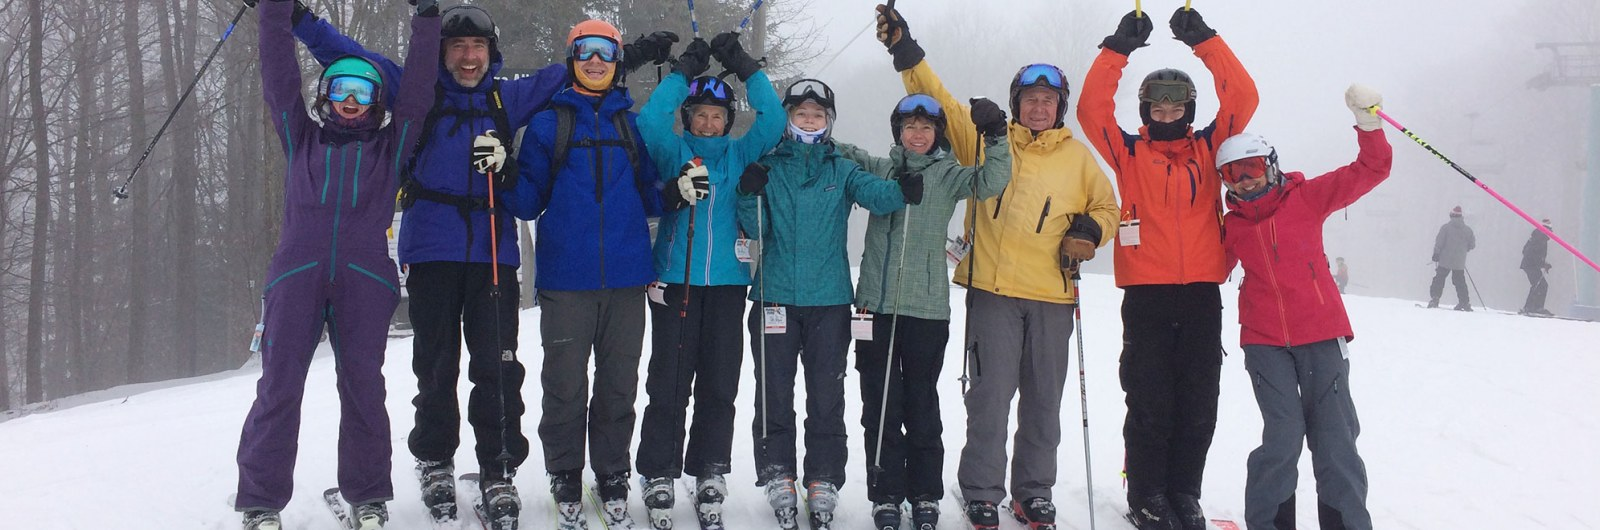 Group of skiers cheering while posing for photo on the mountain